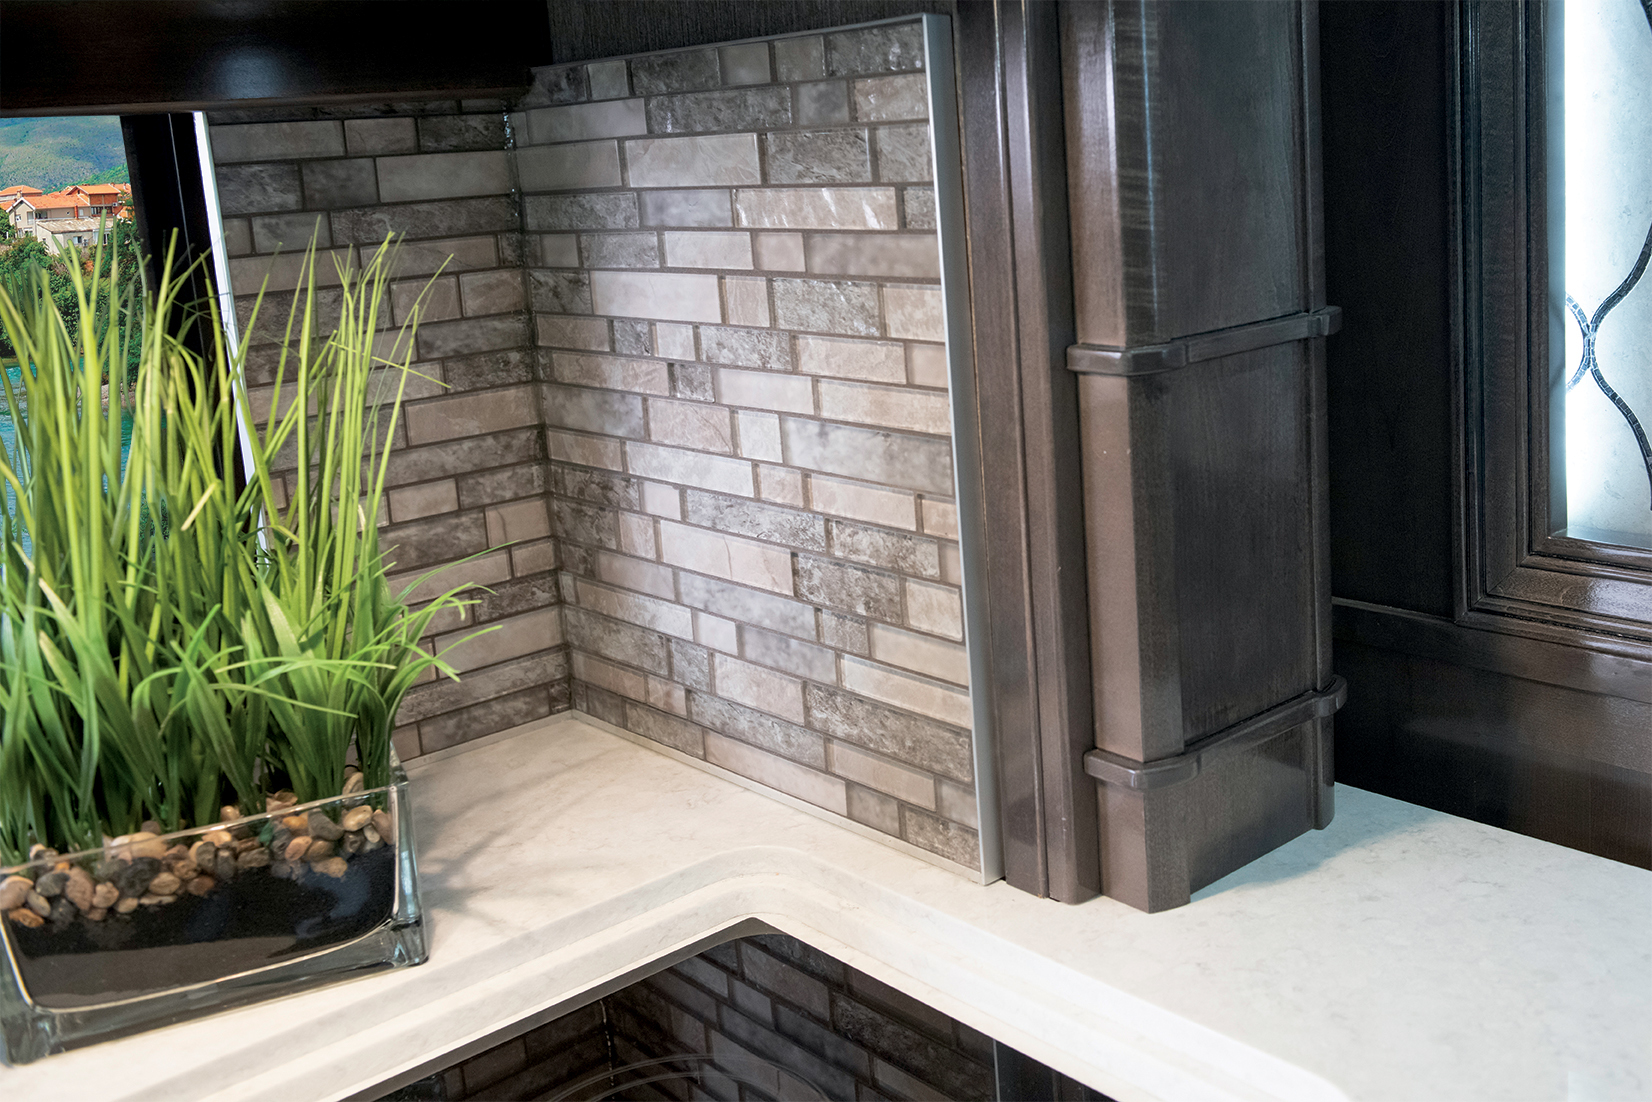 Backsplash Dream45 A rockport S Bcab 5635